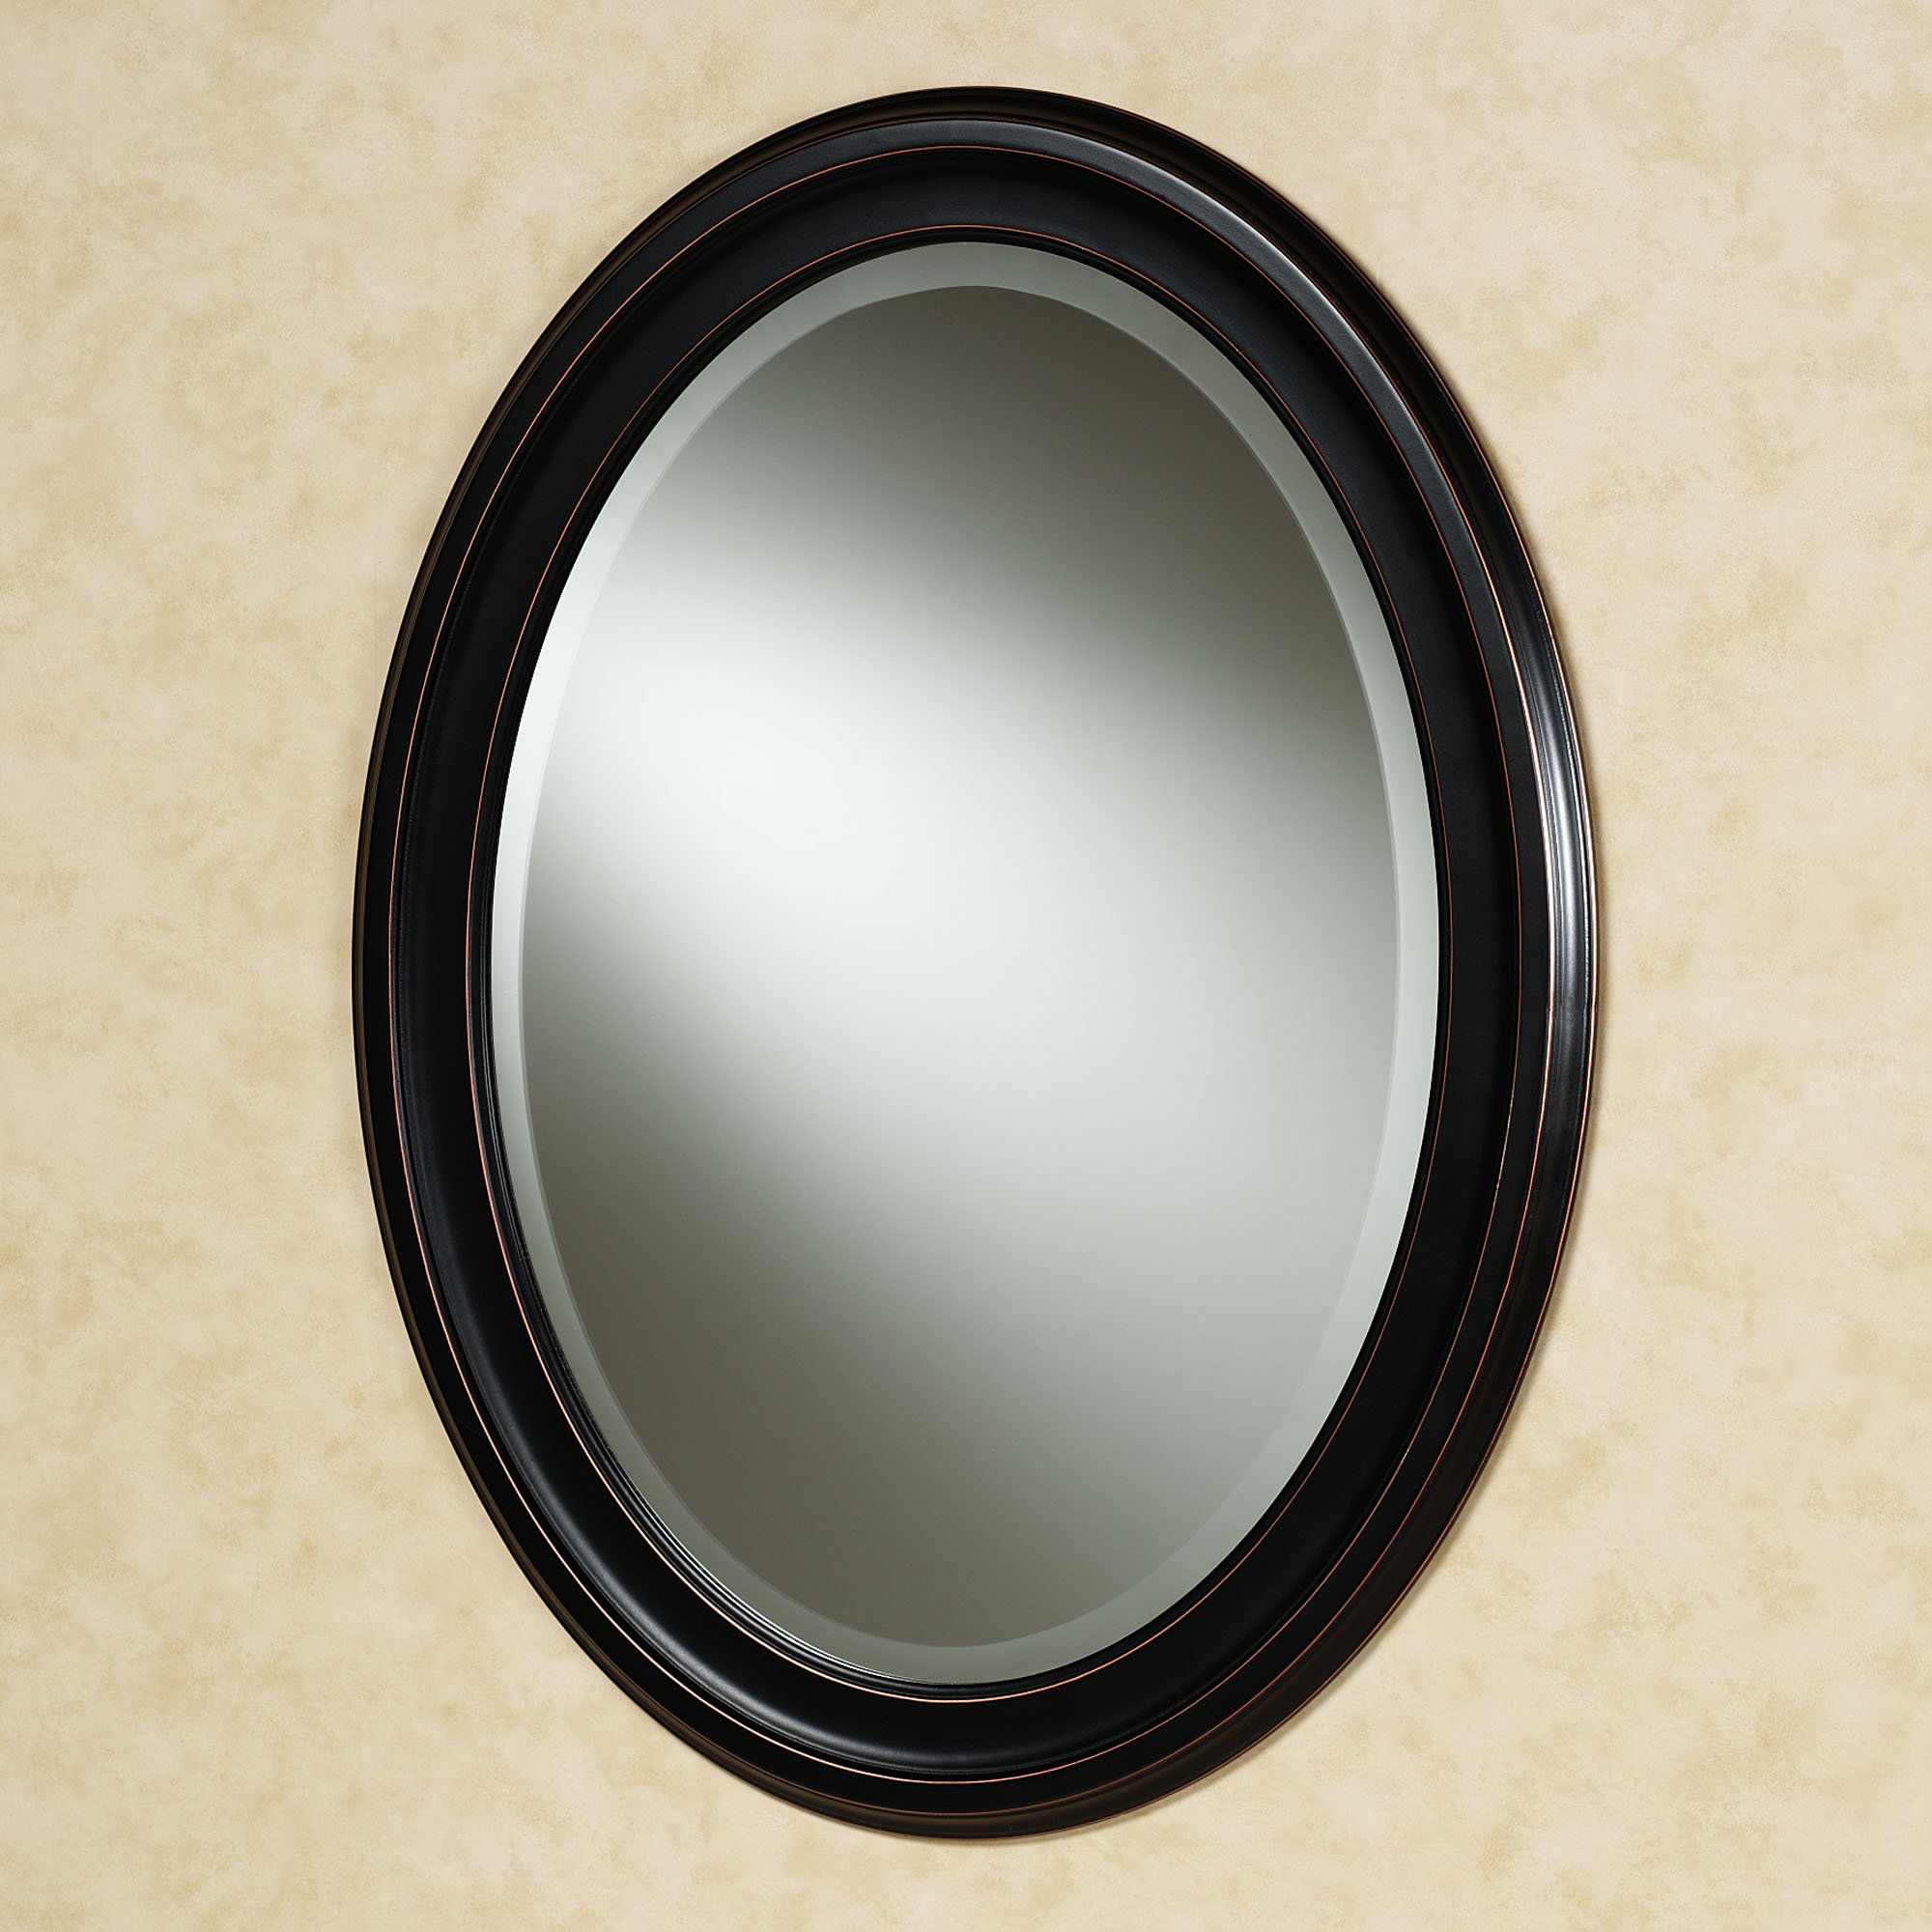 Black Oval Wall Mirrors Pertaining To Latest Oval Wall Mirrors, Black Oval Wall Clock Black Oval Wall Mirror (View 4 of 20)